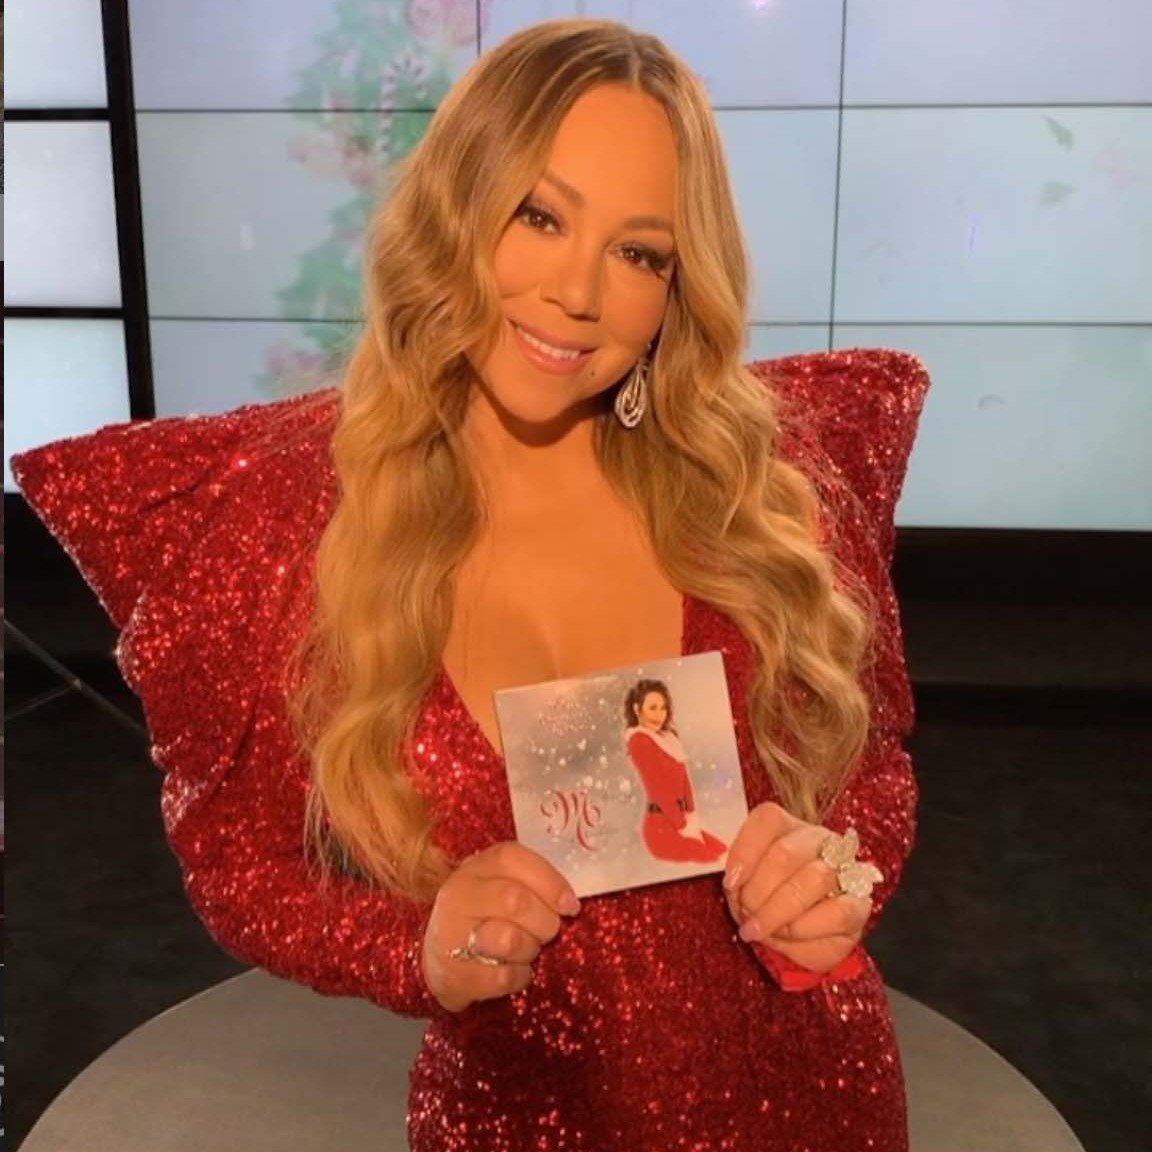 "<h2>Mariah Carey</h2></p><p>The unofficial queen of Christmas, <strong><a href=""https://ca.hellomagazine.com/tags/0/mariah-carey"">Mariah Carey</a></strong>, is celebrating the 25th anniversary of ""All I Want for Christmas Is You"" with a deluxe anniversary edition and a holiday tour. <p>Photo: © Instagram/mariahcarey"